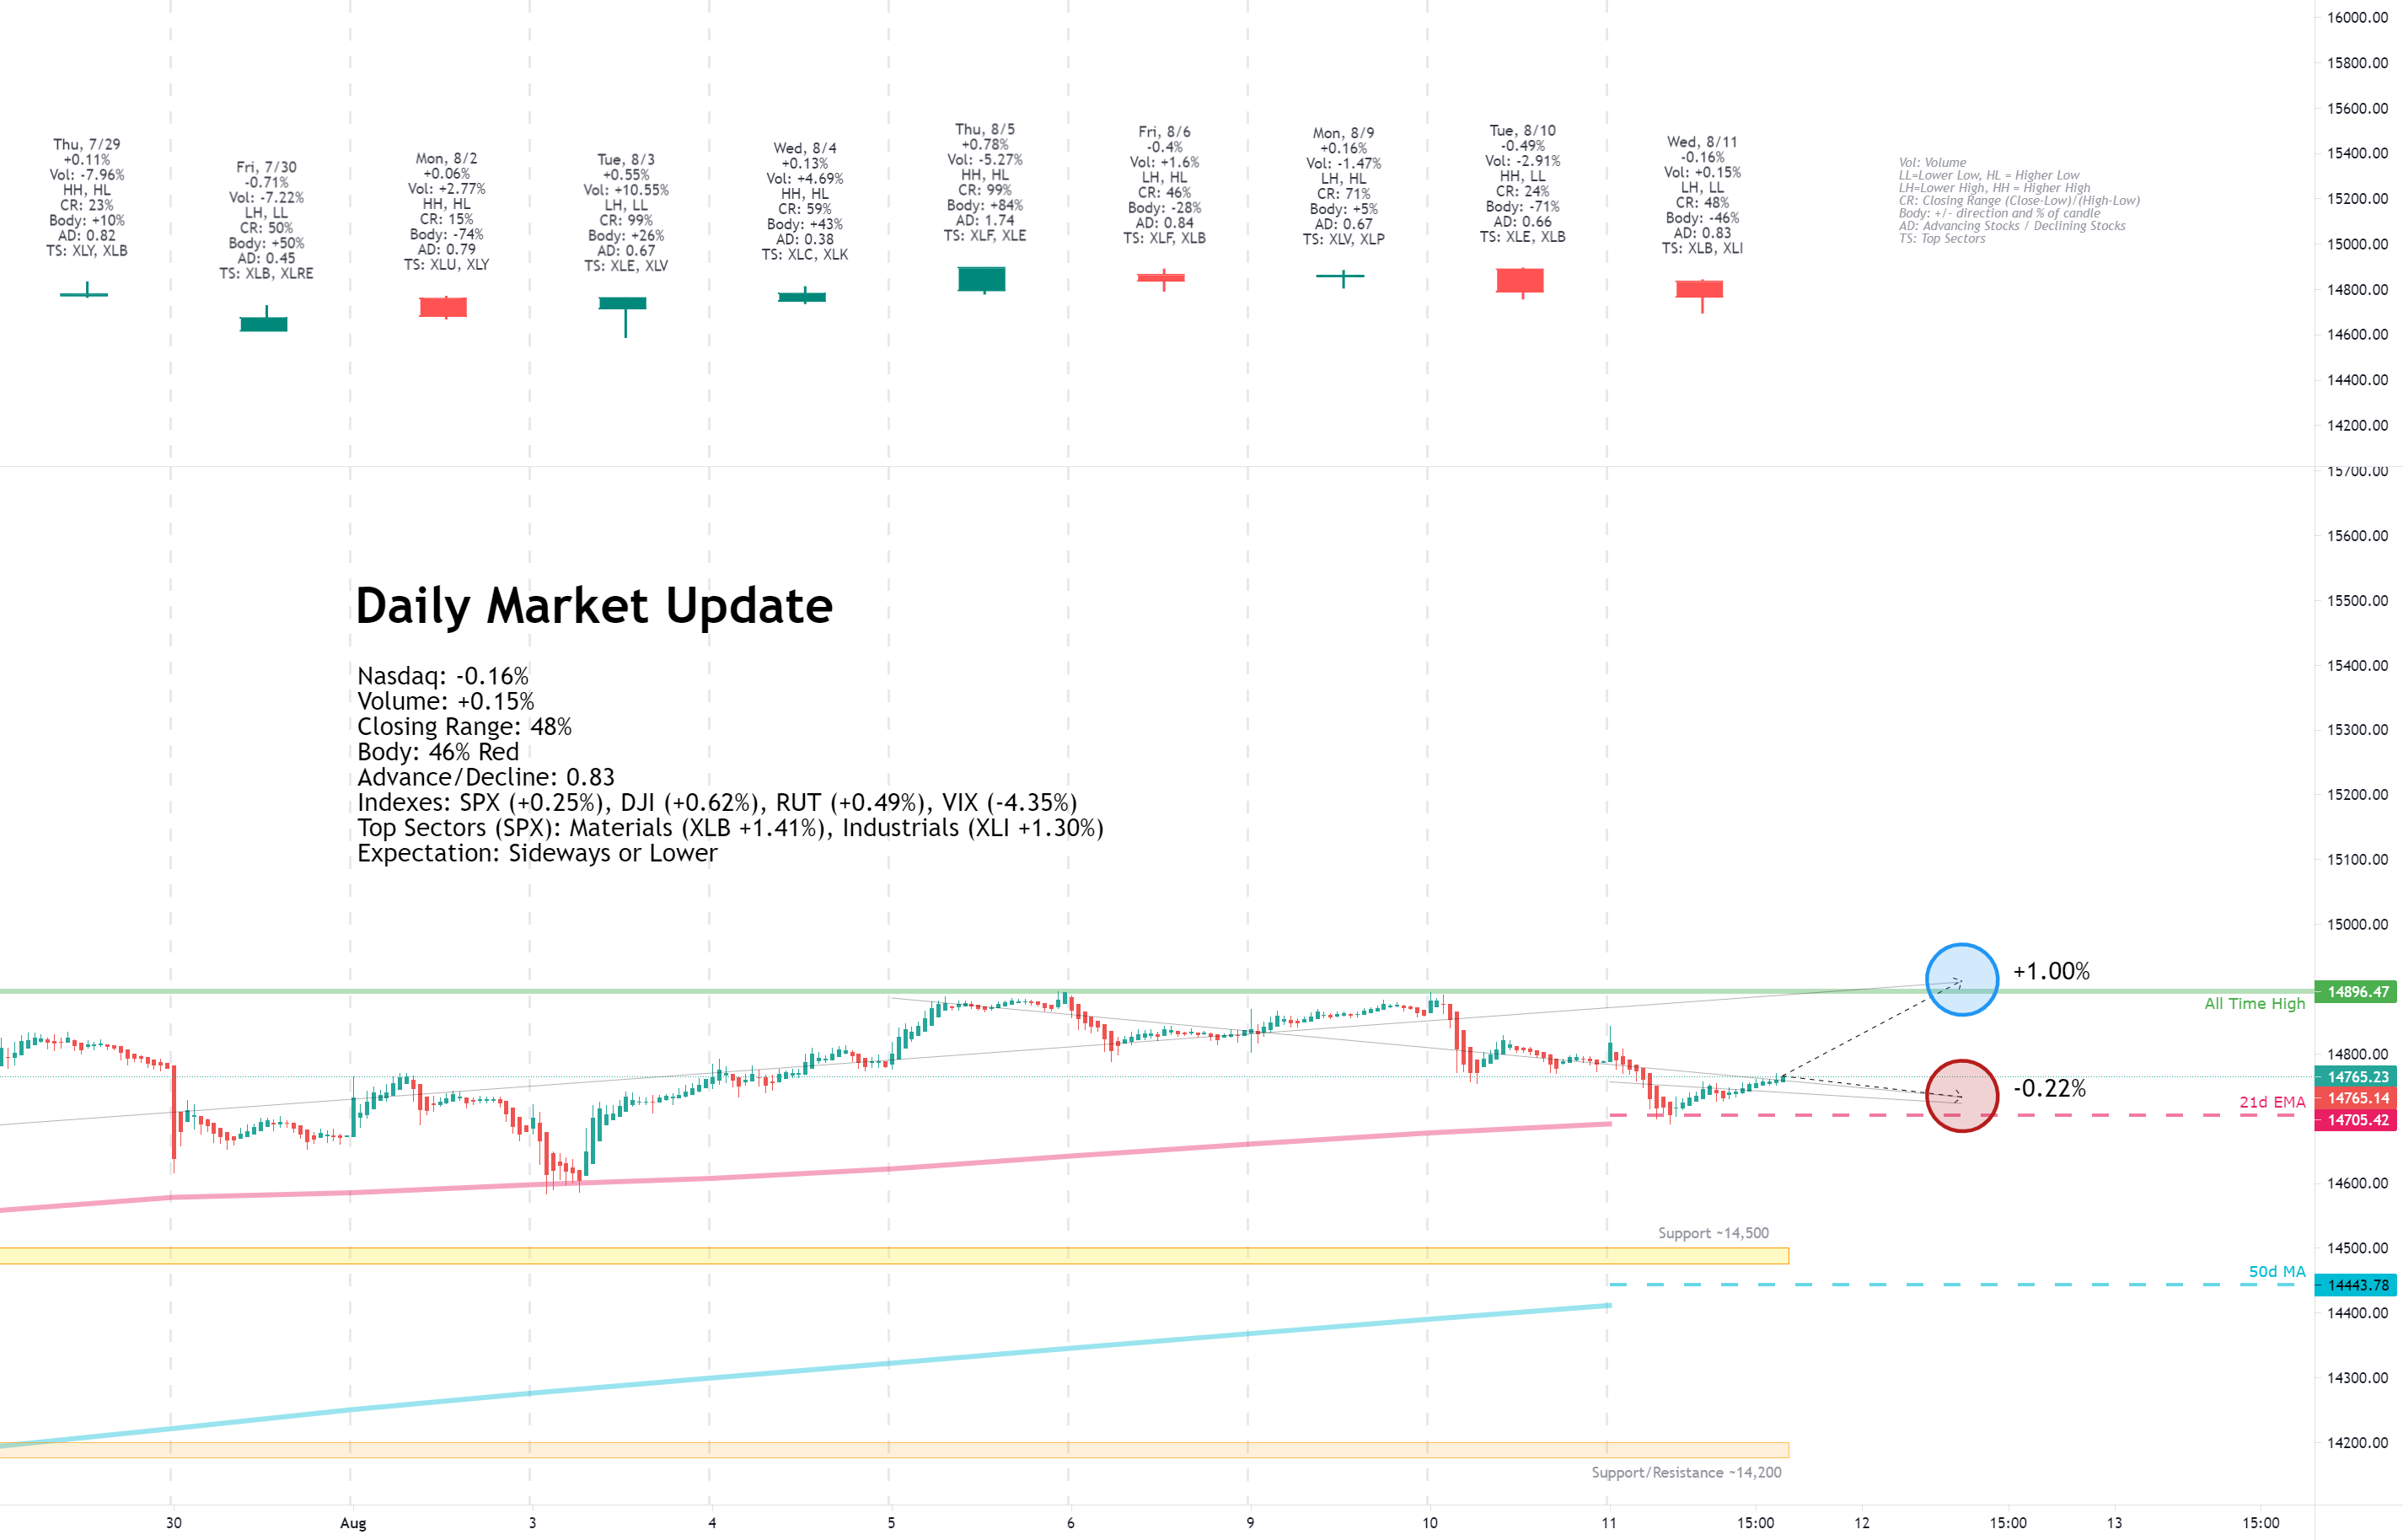 Daily Market Update for 8/11